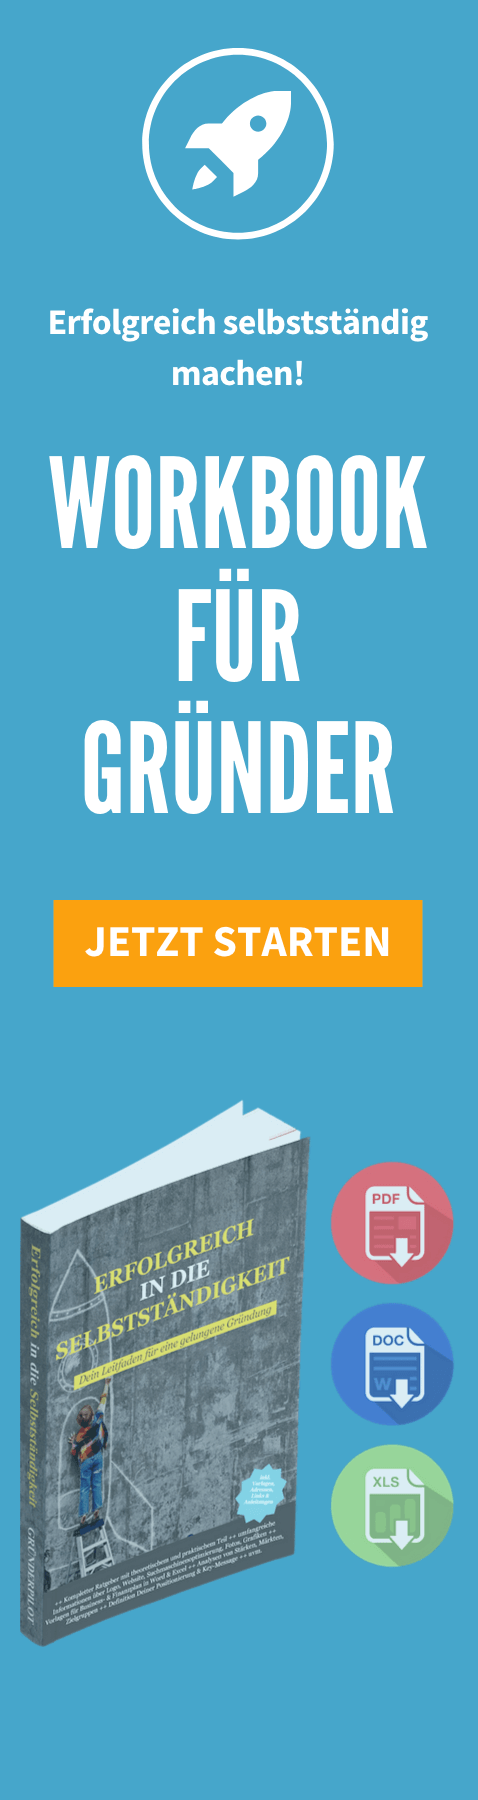 Gruender Workbook1 - Interview mit Julian Jost